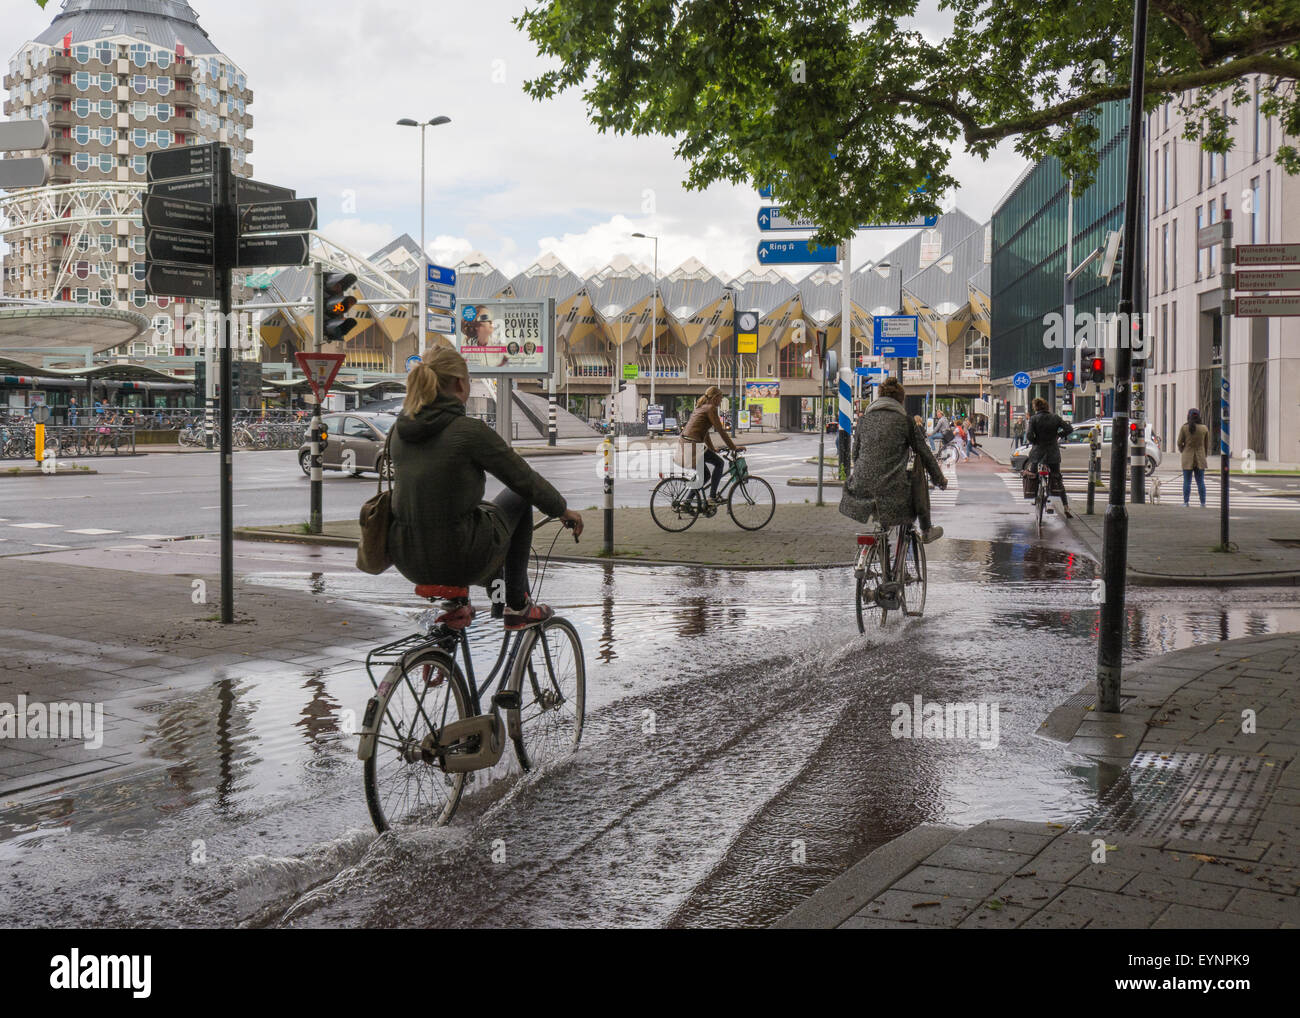 Rotterdam, Netherlands - young women try to avoid getting wet as they ride through flooded cycle lanes in front - Stock Image